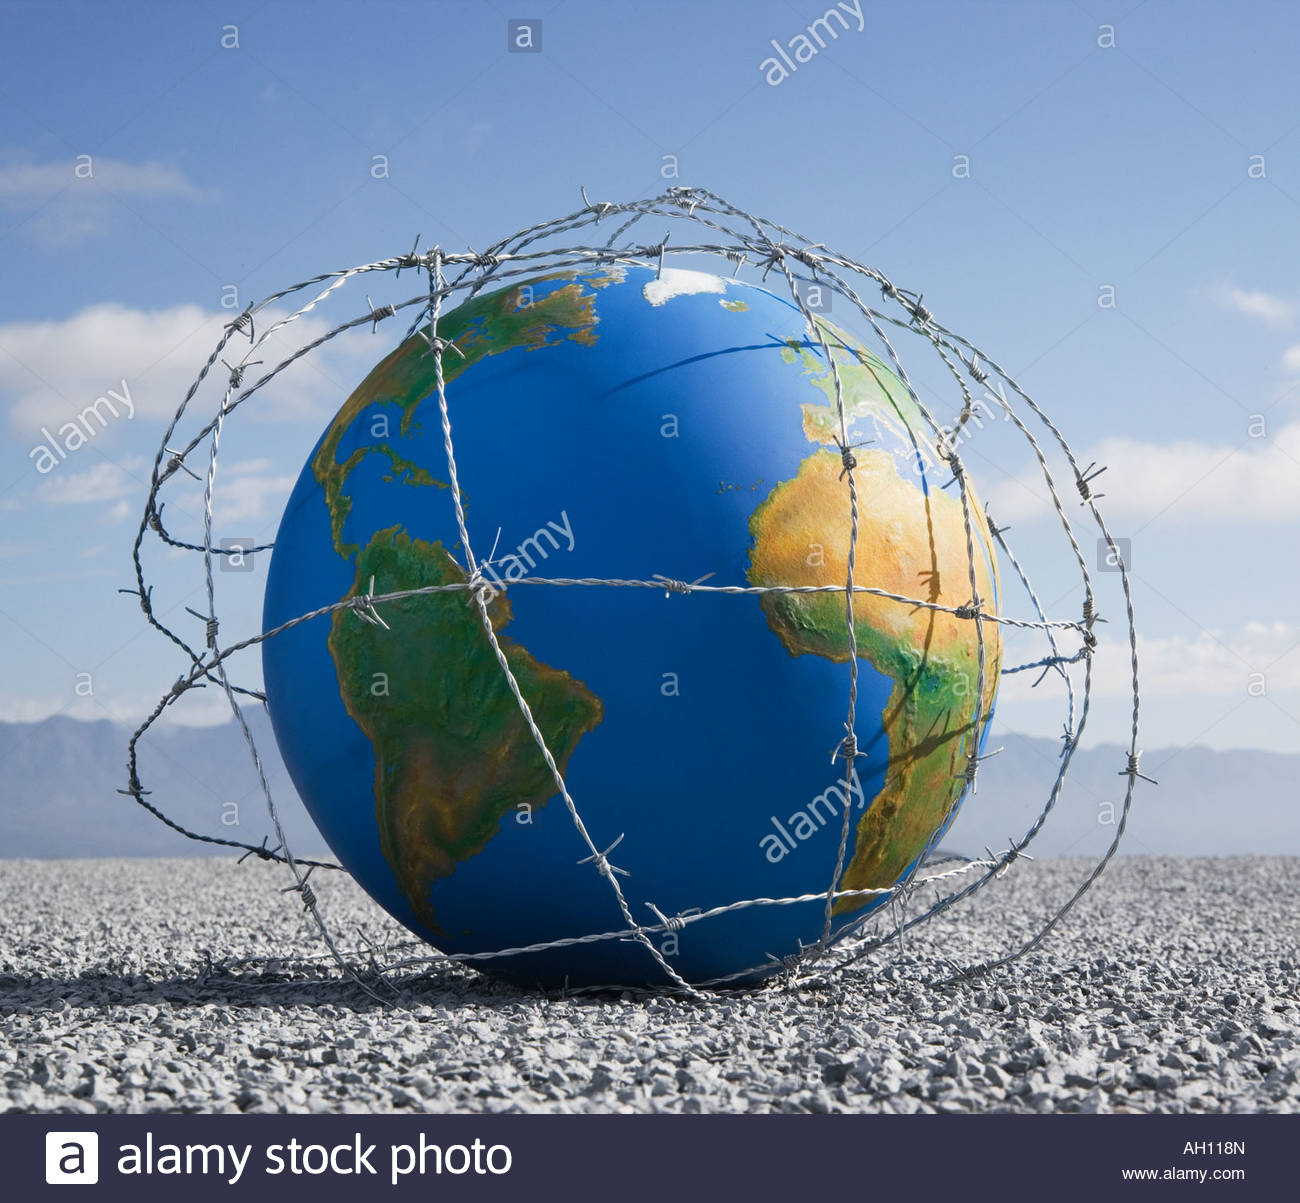 A globe entangled in barbed wire - Stock Image